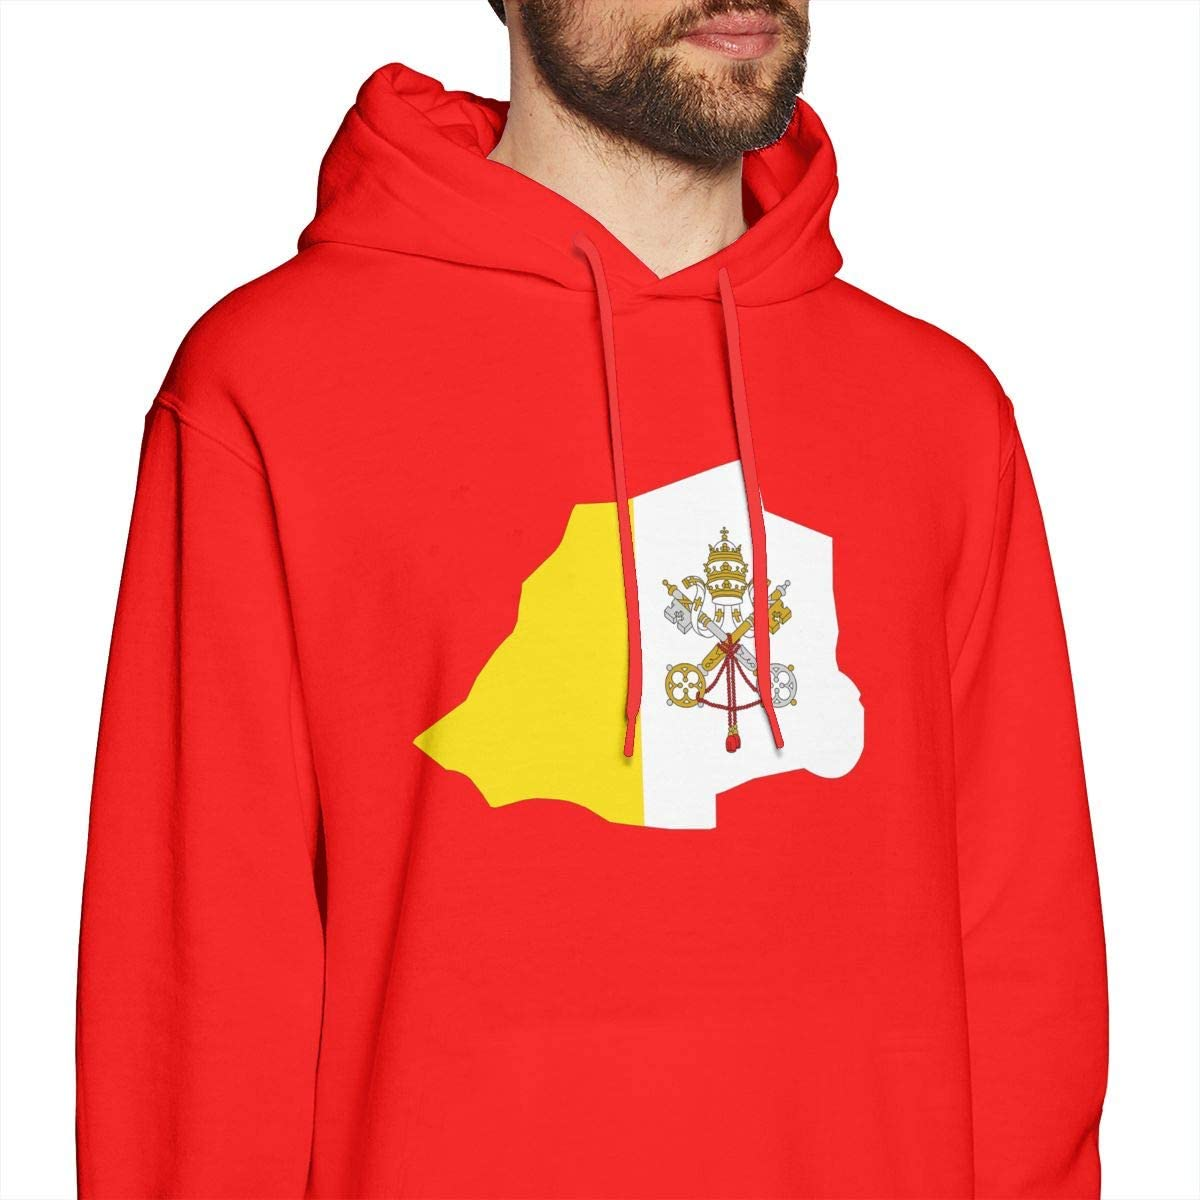 Mens Hoodies Vatican Flag Map Fashion Pullover Hooded Print Sweatshirt Jackets